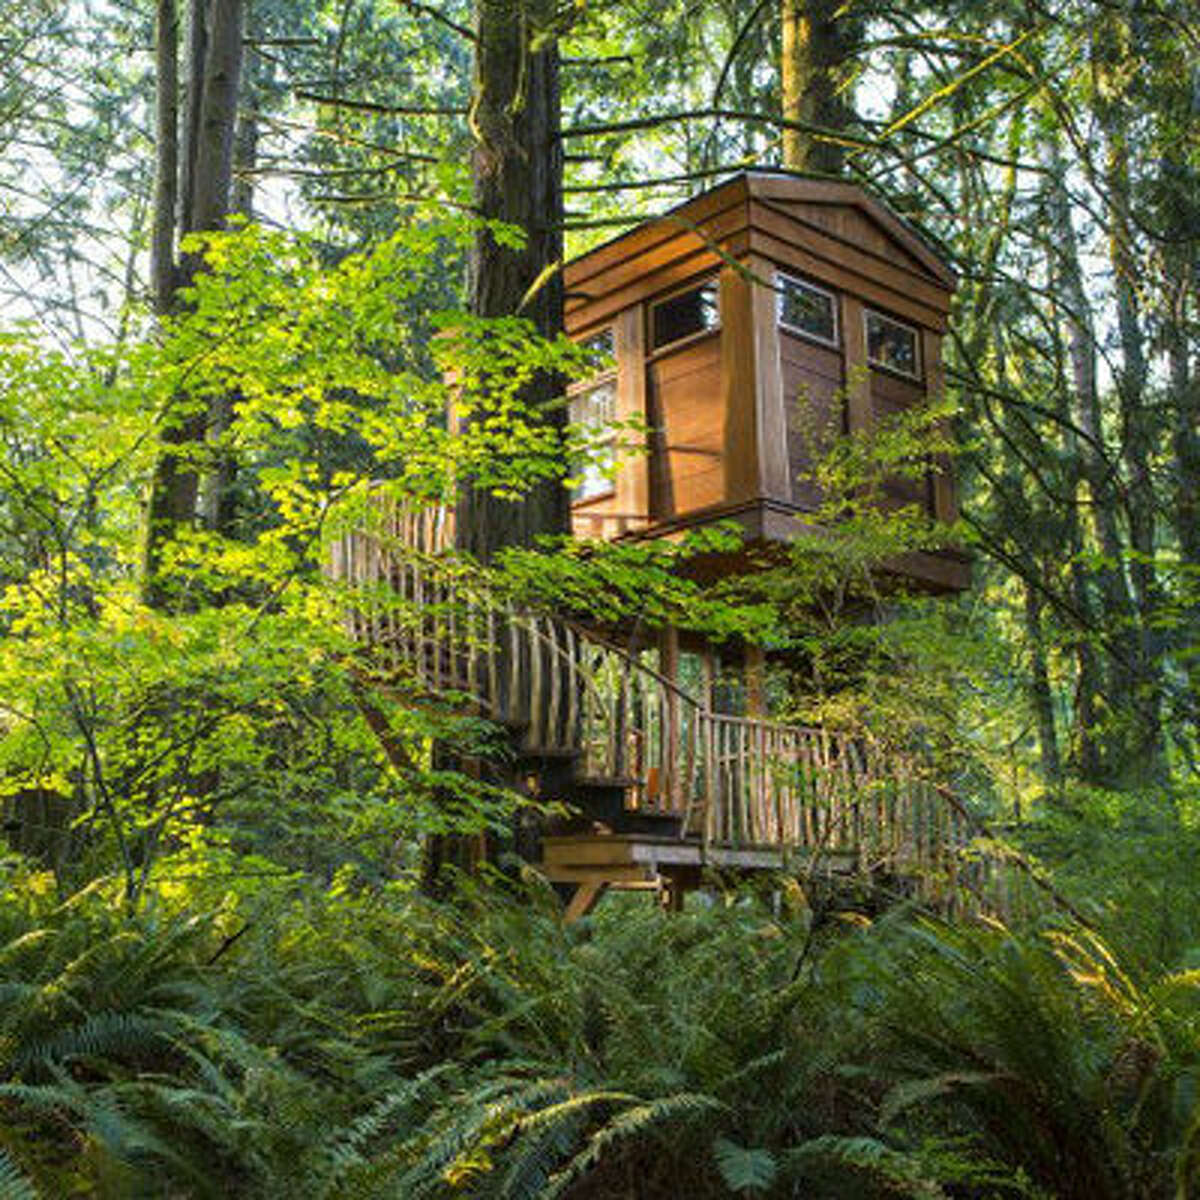 Northwestern treetop hideaway Head to the Pacific Northwest to enjoy the magical grounds of Treehouse Point. Situated in lush forest of Fall City, Washington, this retreat center is home to six different treehouses-each crafted by world-renowned treehouse builder and author Pete Nelson. These incredibly, inventive designs come with well-kept living and sleeping quarters, as well as ground-floor bathrooms and a communal dining and lounge areas within the Main Lodge.